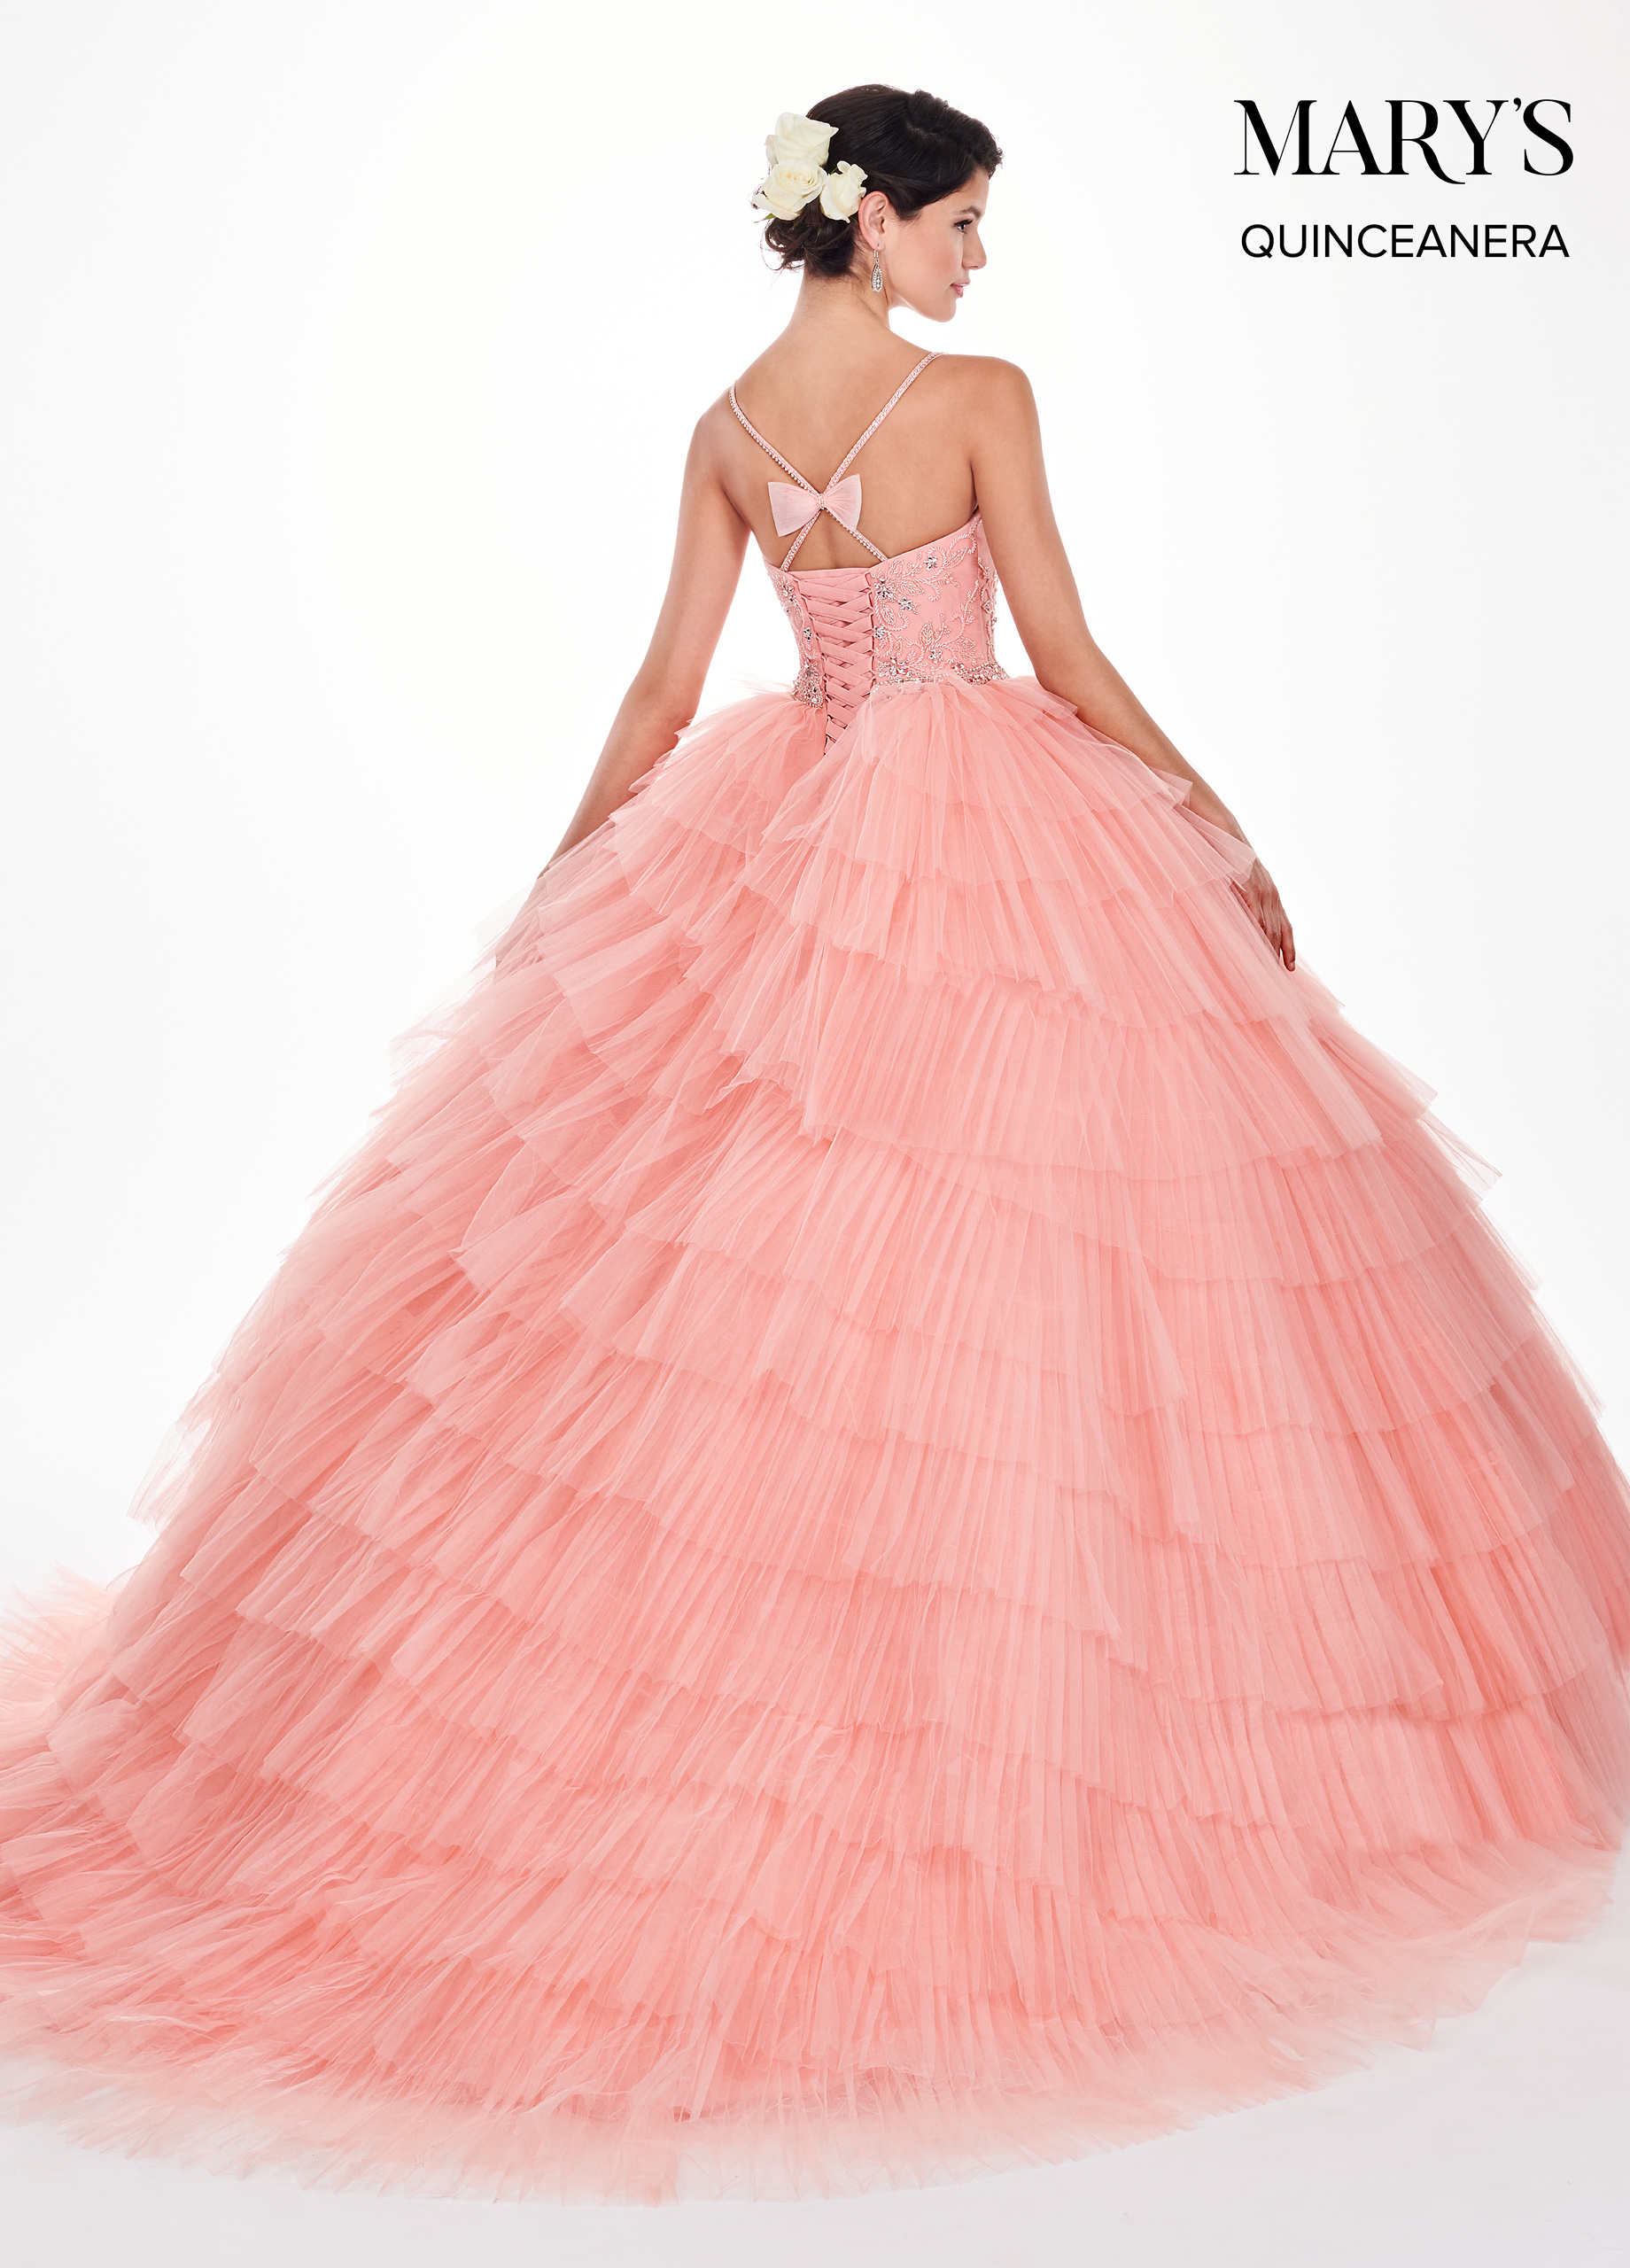 Marys Quinceanera Dresses | Mary's Quinceanera | Style - MQ2055